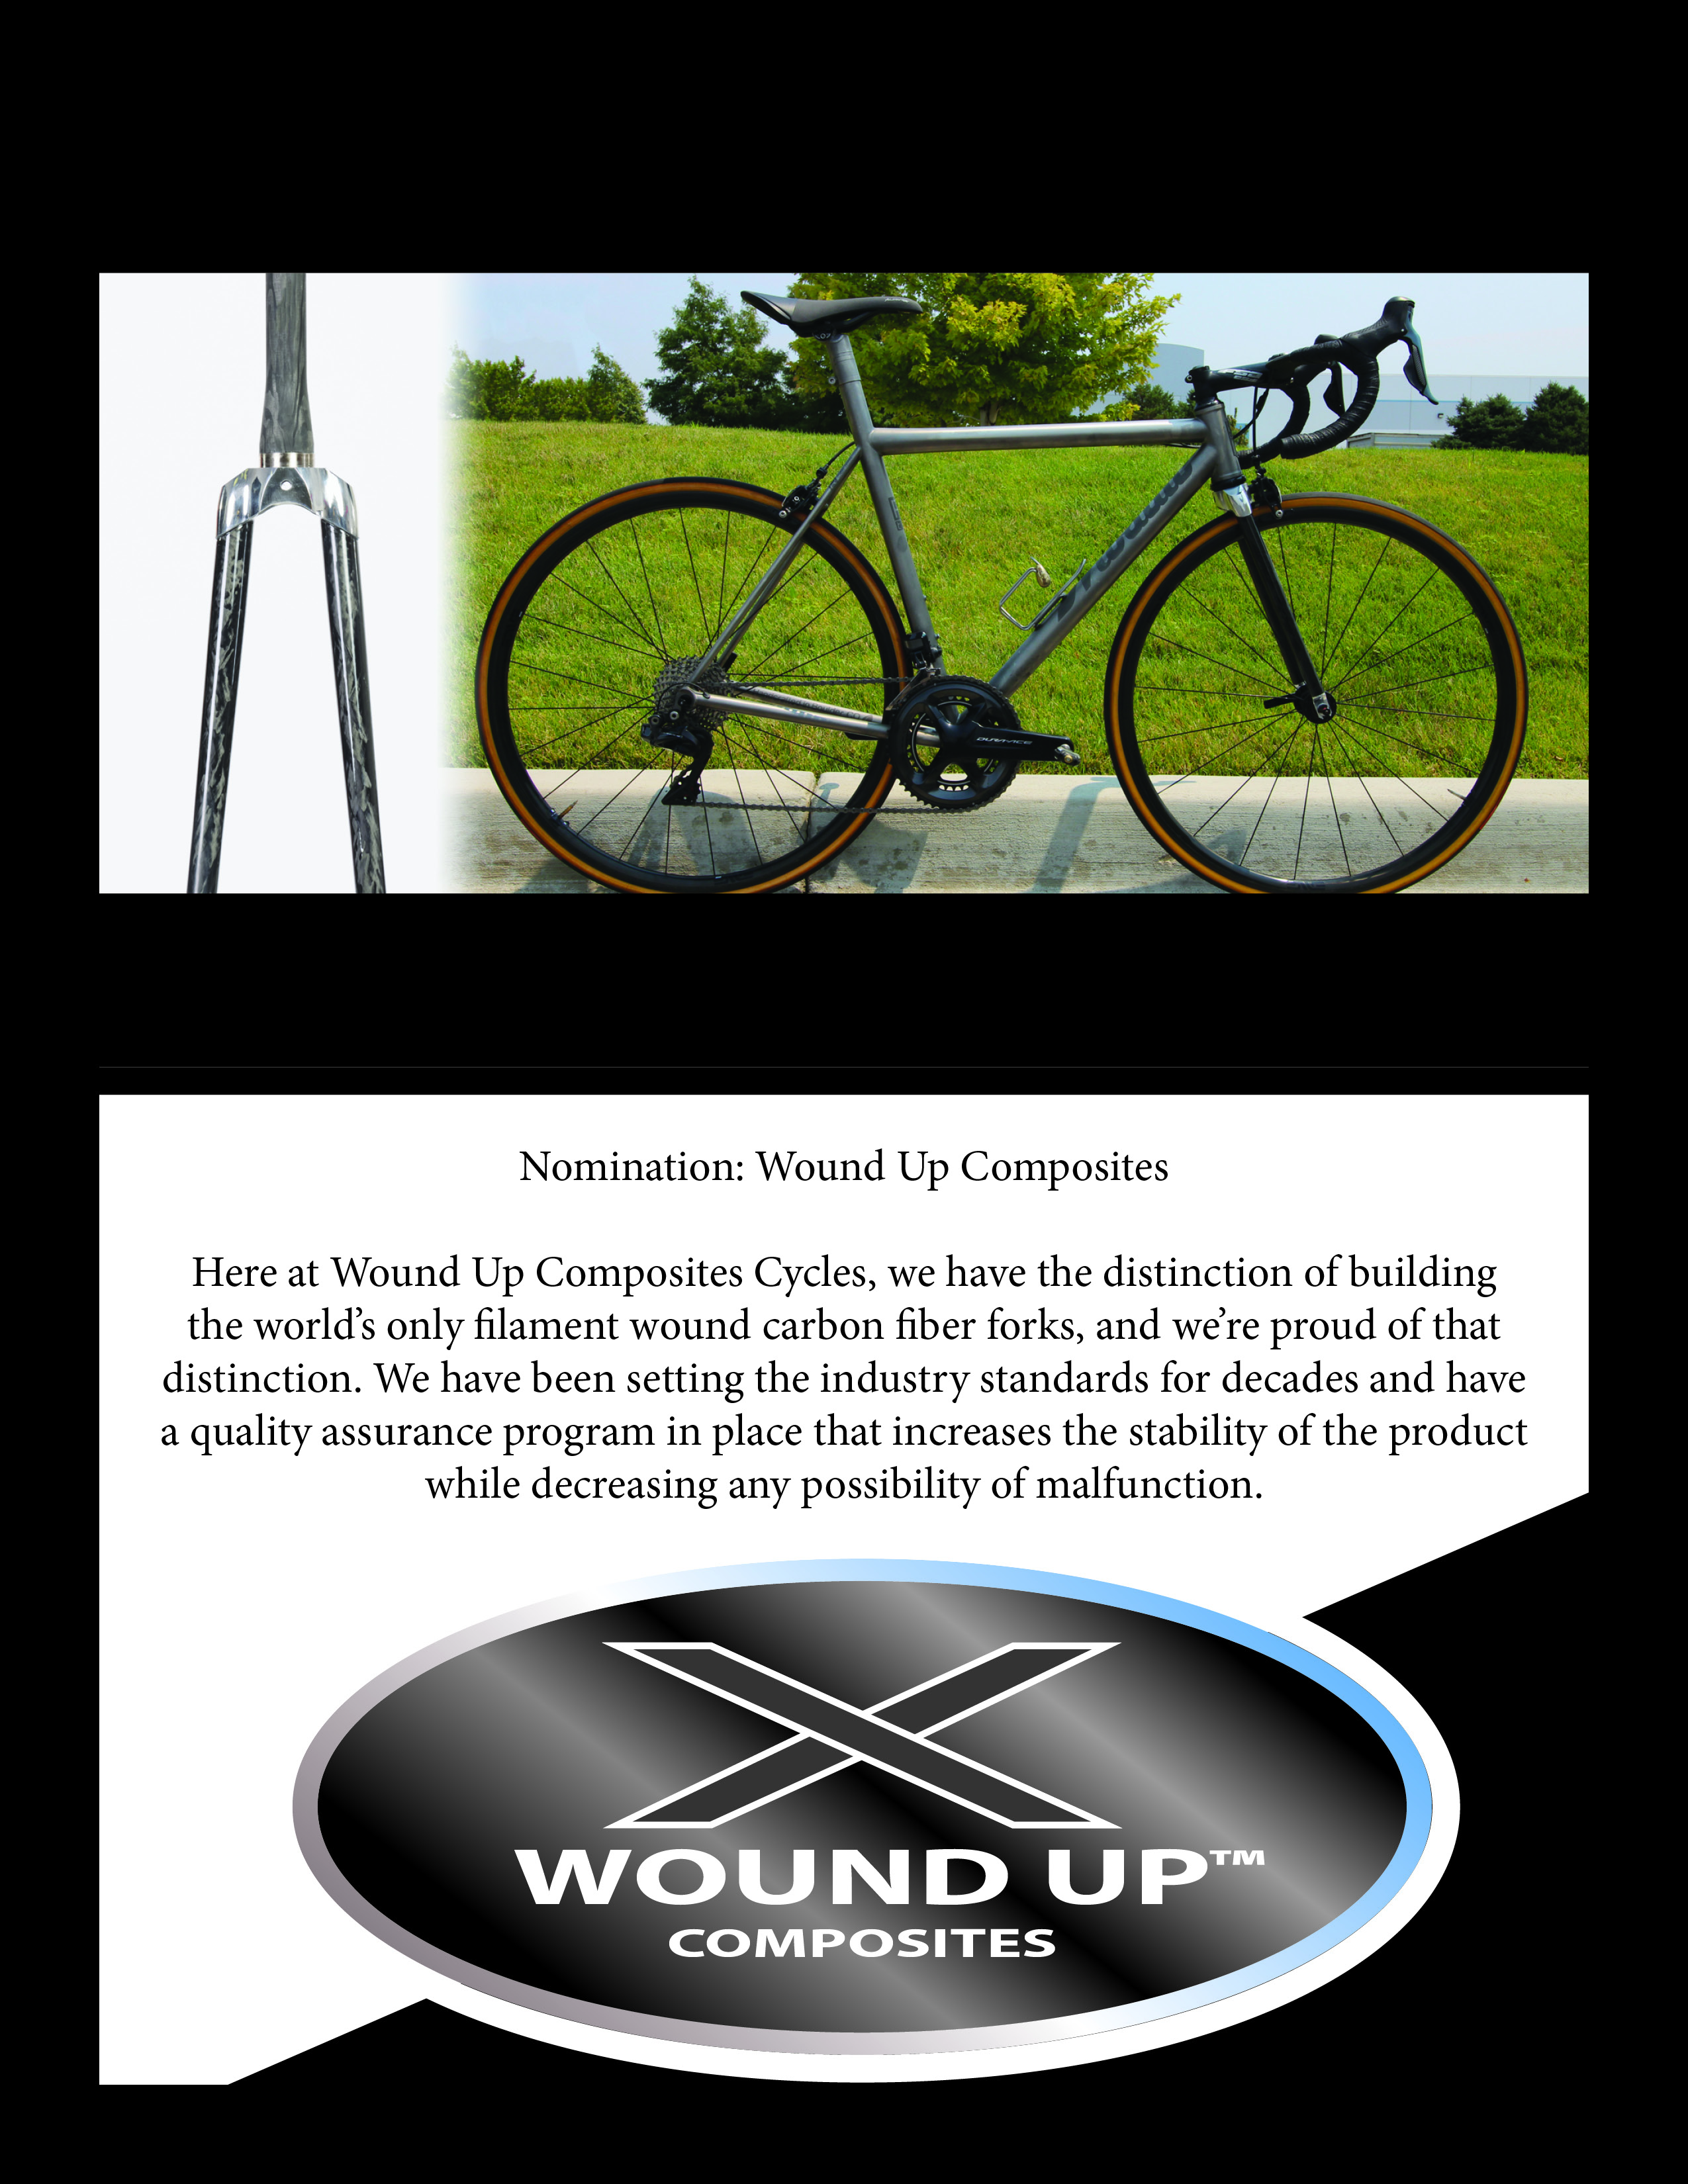 advanced composites inc wound up composites bicycle forks